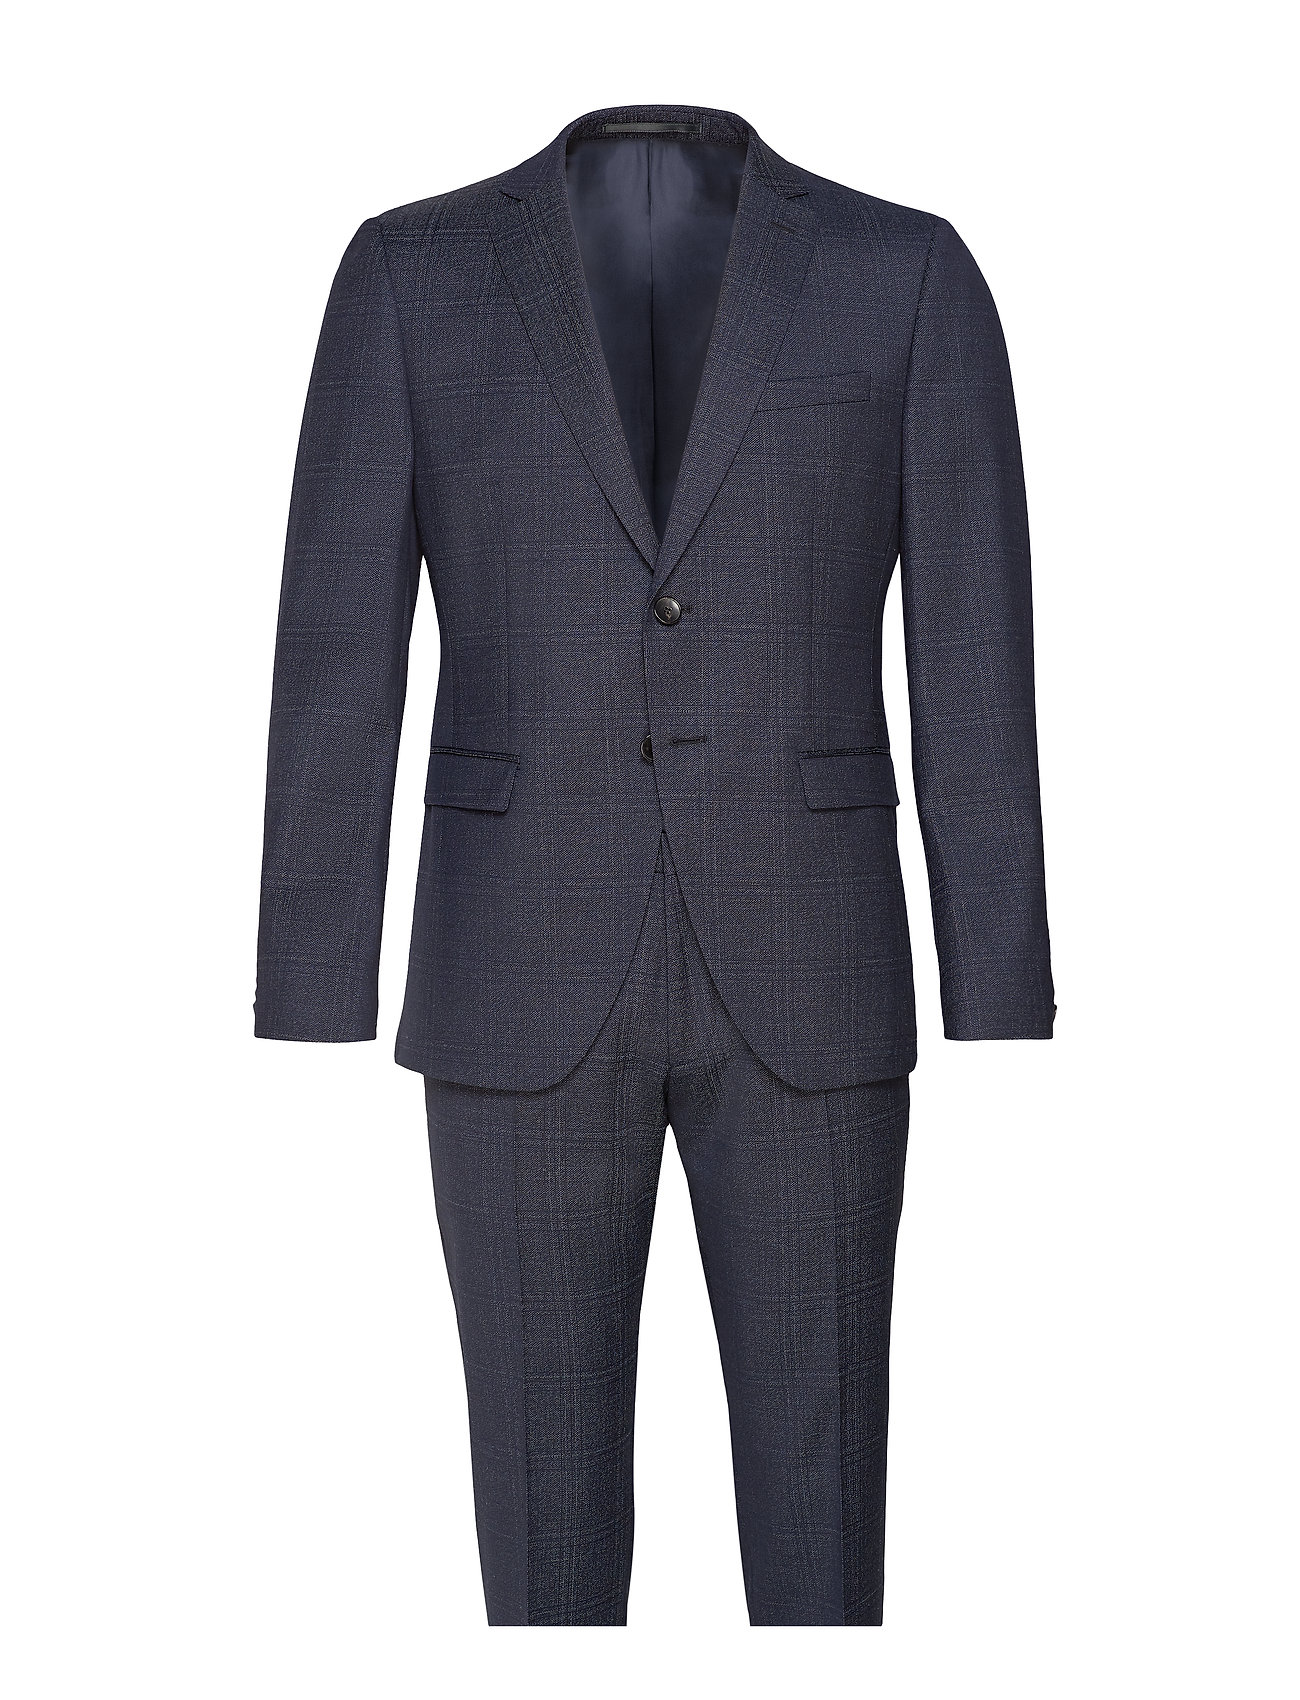 BOSS Business Wear Reymond/Wenten - DARK BLUE